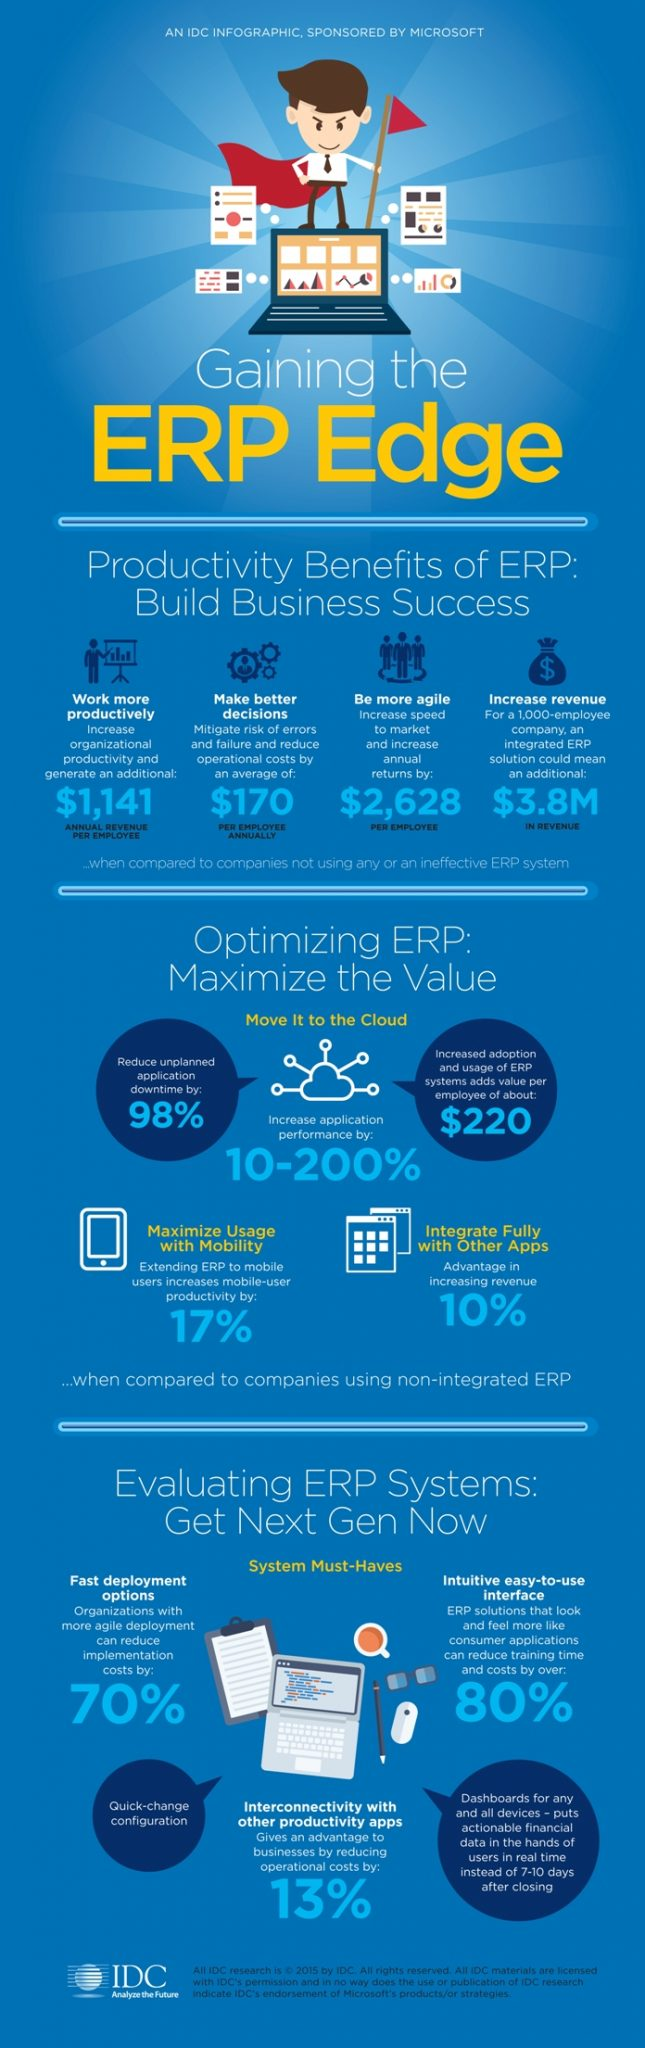 INFOGRAPHIC: Gaining the ERP Edge